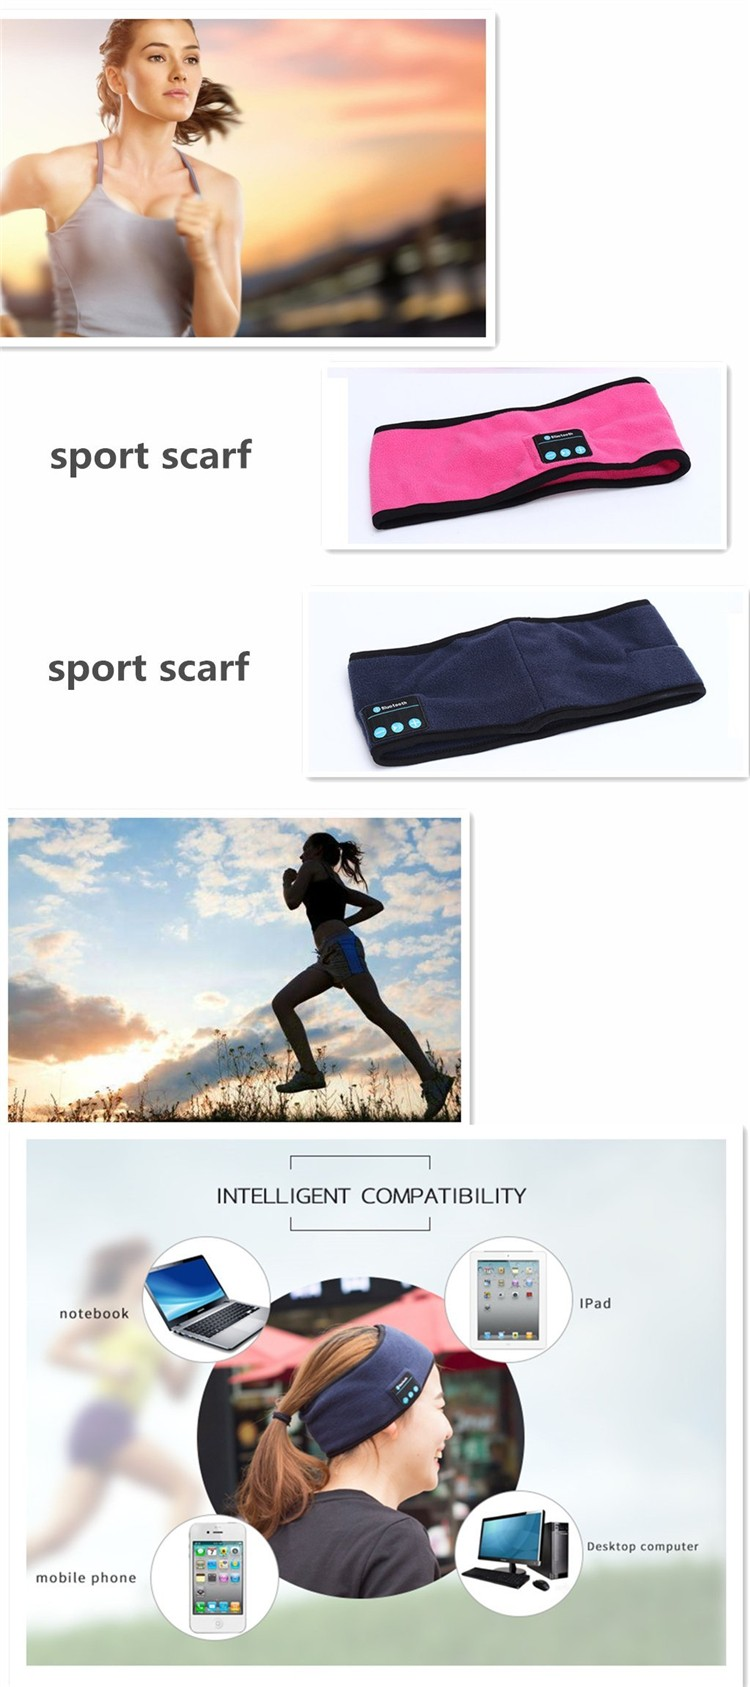 Wireless Stereo Sound Head Phone for Sport